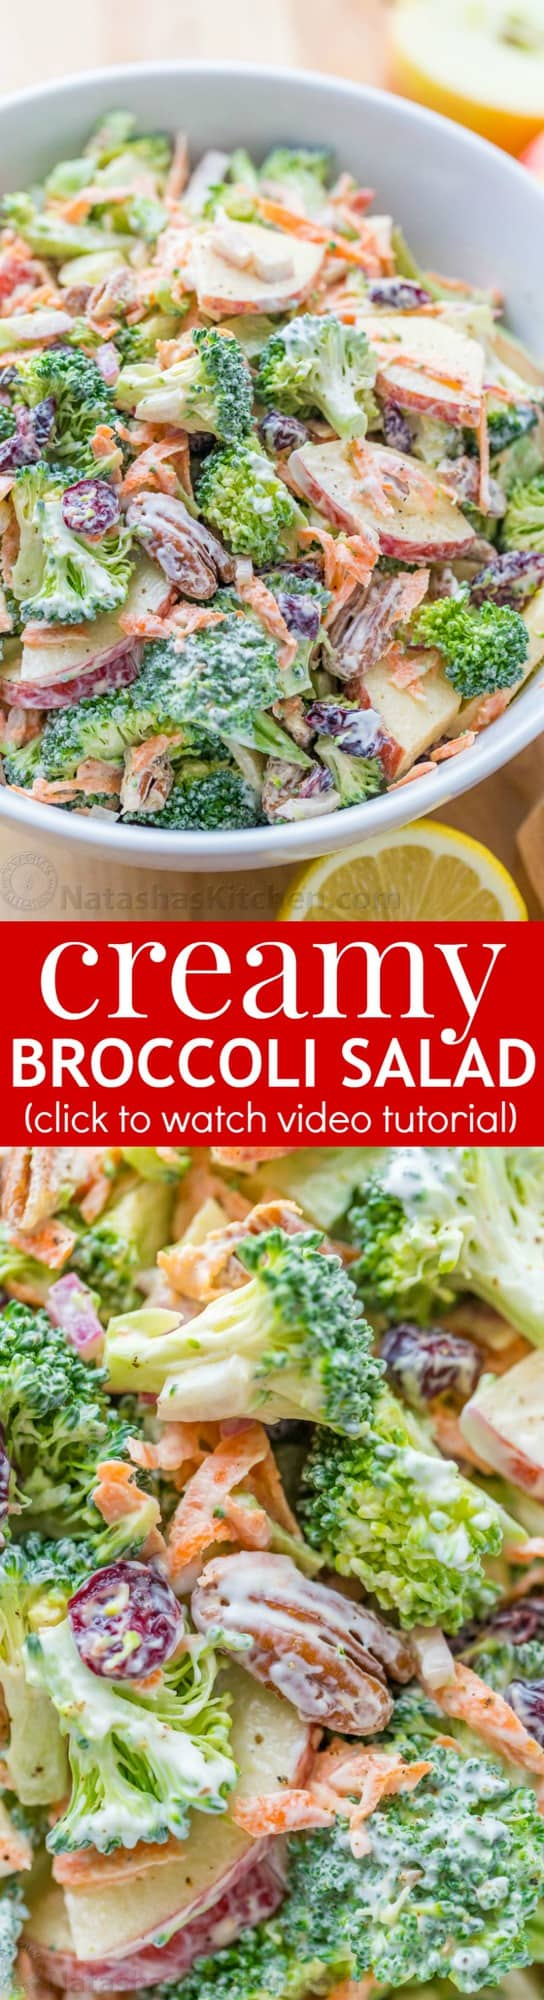 Broccoli Salad Recipe with Creamy Lemon Dressing : NatashasKitchen.com